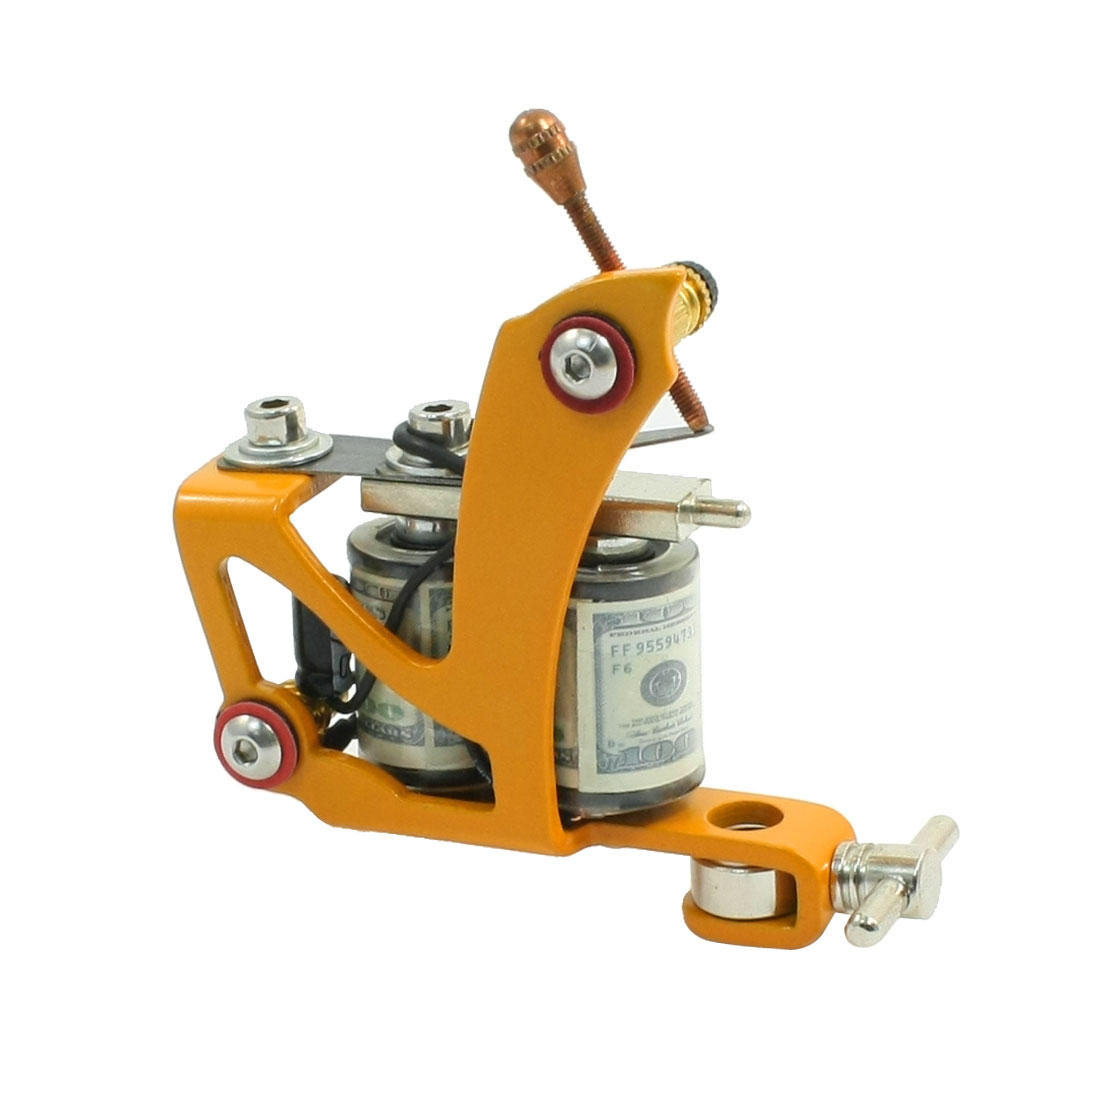 Handmade 10Wrap Coil Cast Iron Tattoo Machine Gun Orange for Liner Shader